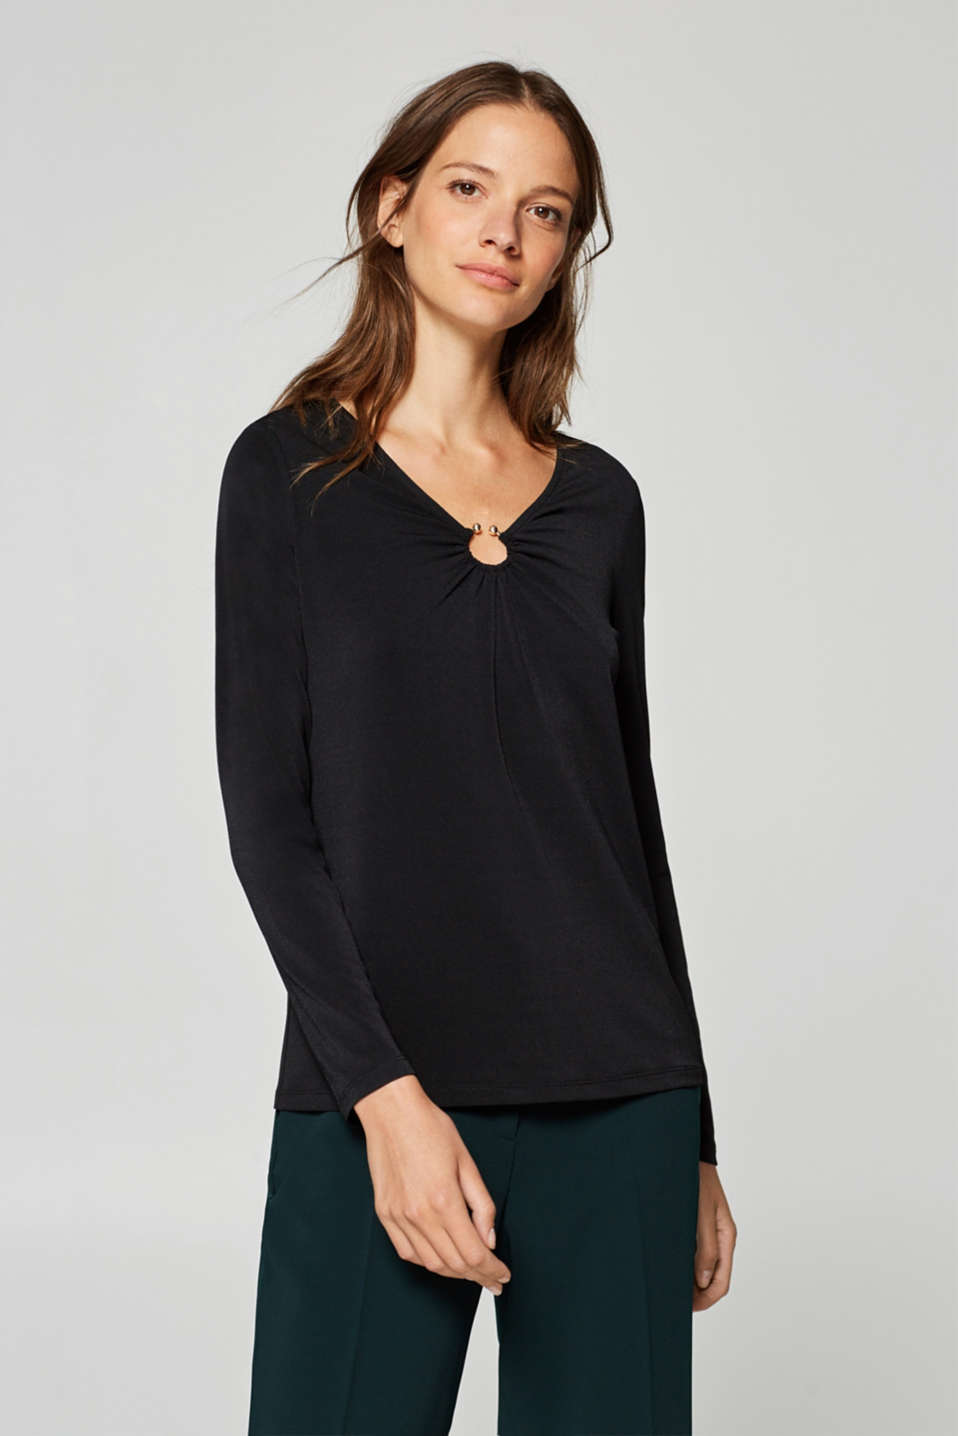 Esprit - Crêpe jersey top with a decorative ring